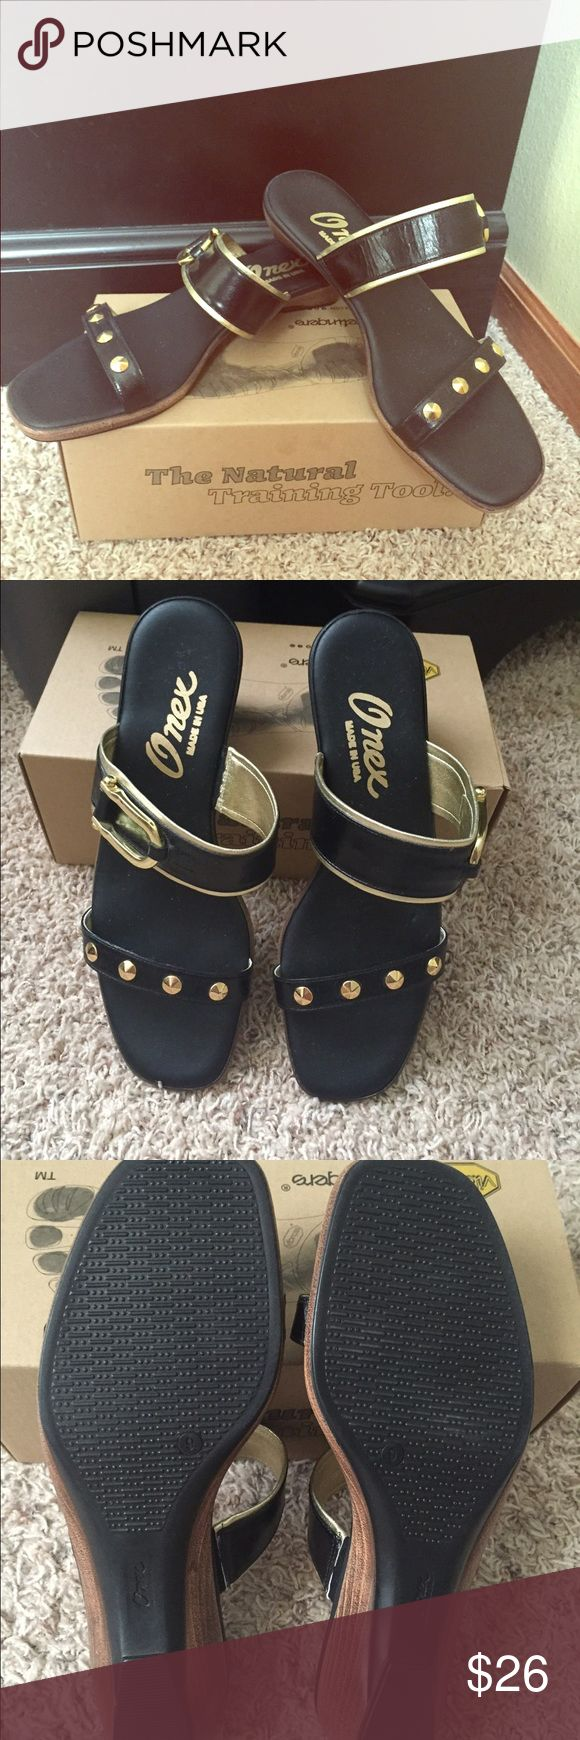 Onex Sandels Quality brand. Made in the USA. Can dress up any casual outfit or dress. Has one small crease on the sole of the left sandal. Onex Shoes Sandals